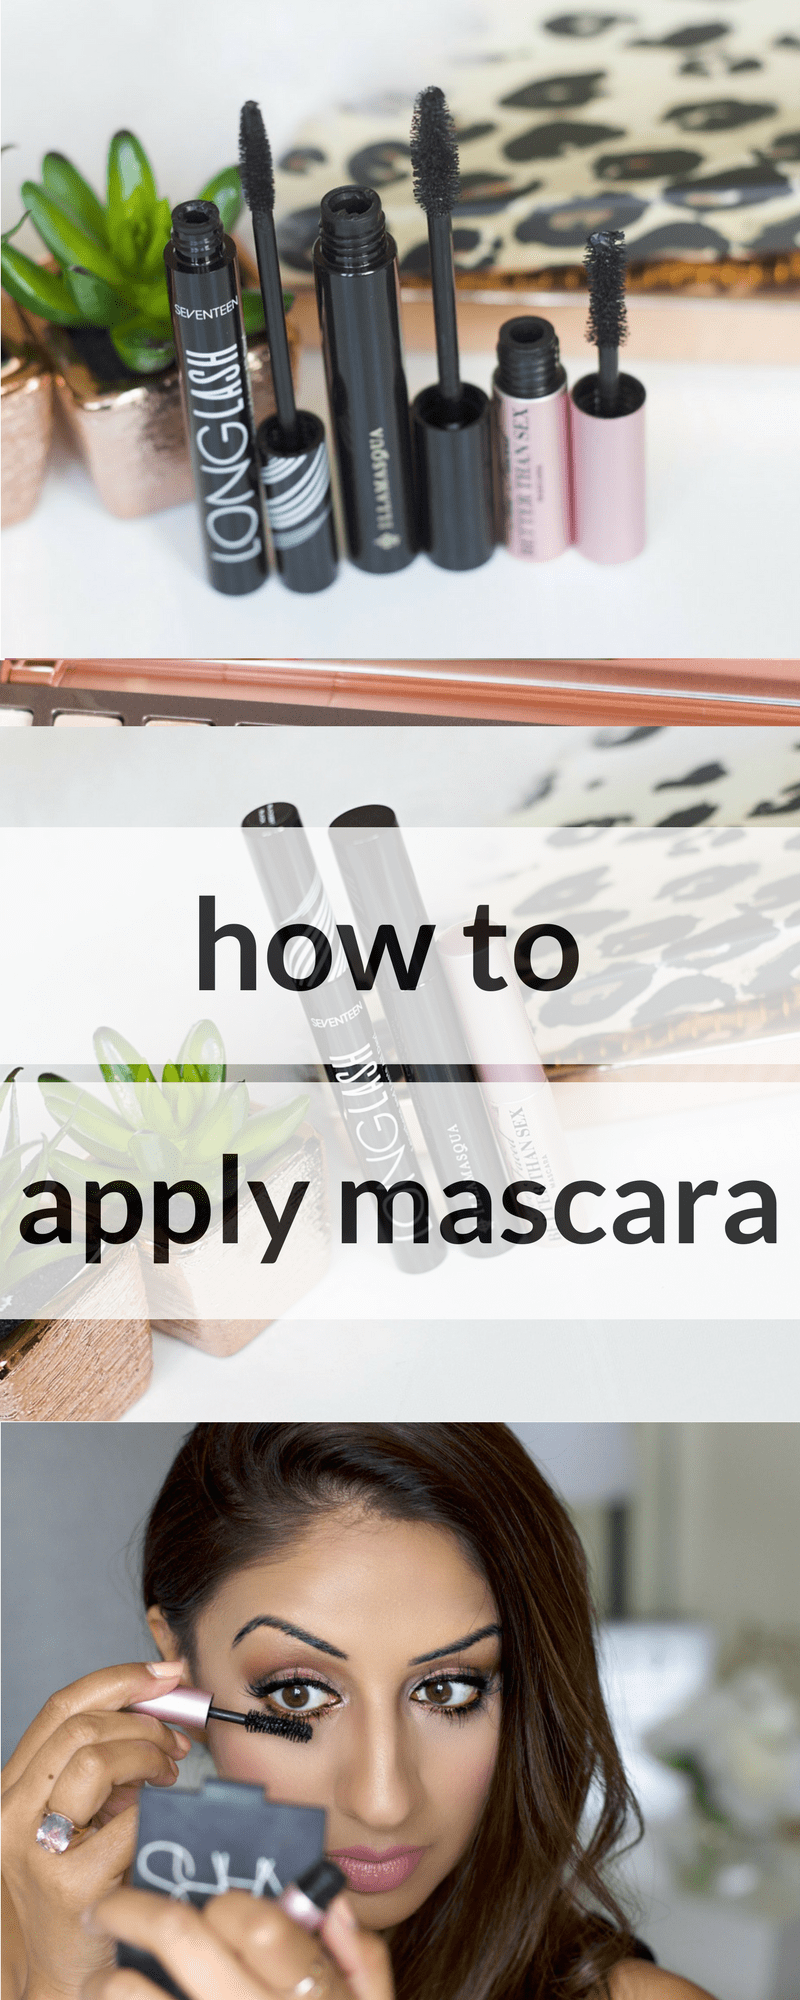 How to apply Mascara ♥ the real techniques